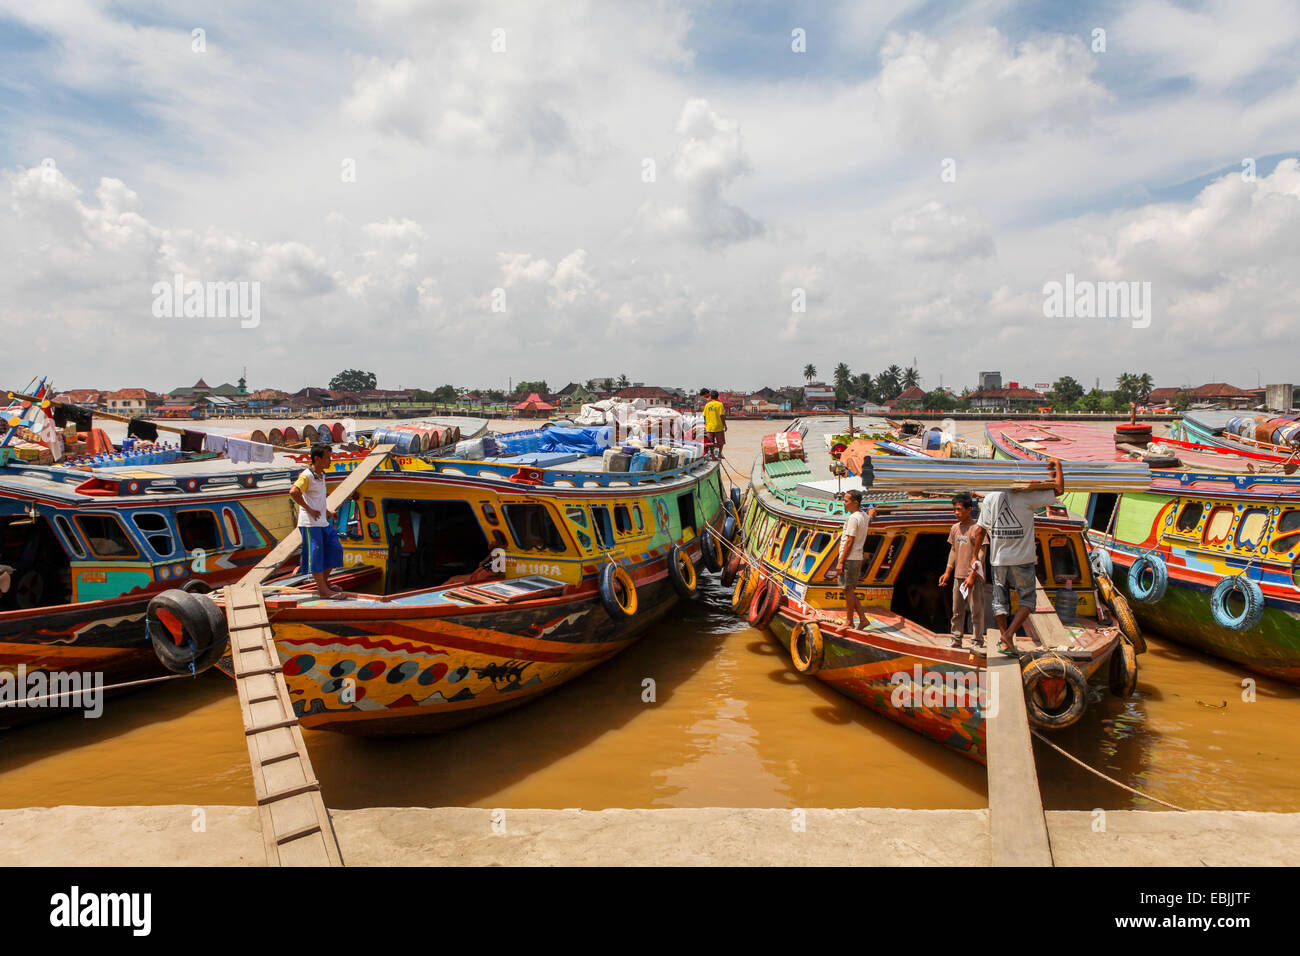 Wooden cargo boats on Musi River, South Sumatra, Indonesia. - Stock Image